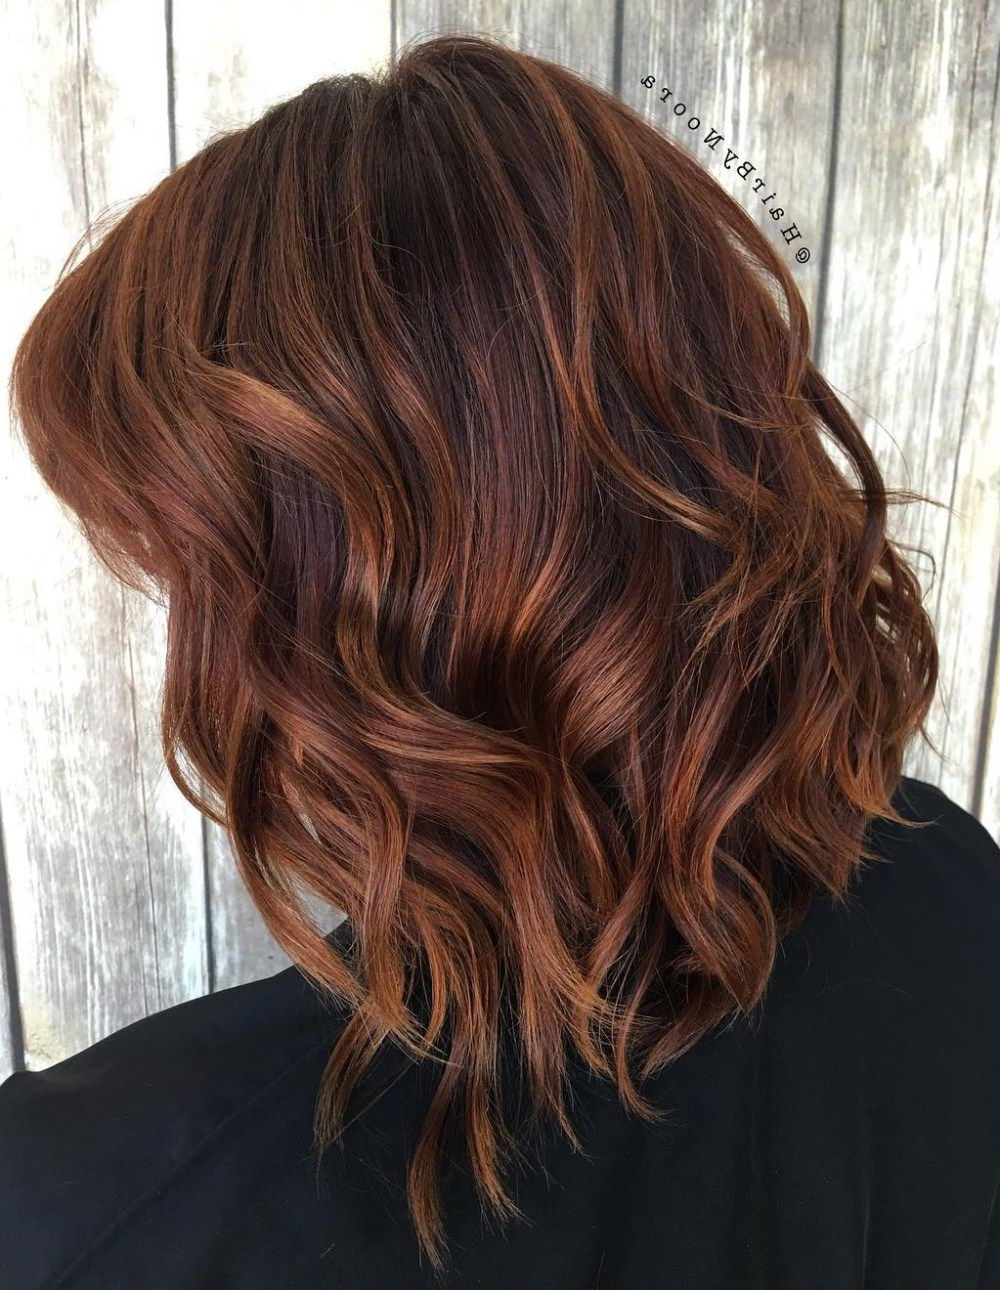 Red Regarding Popular Medium Hairstyles With Red Highlights (View 20 of 20)